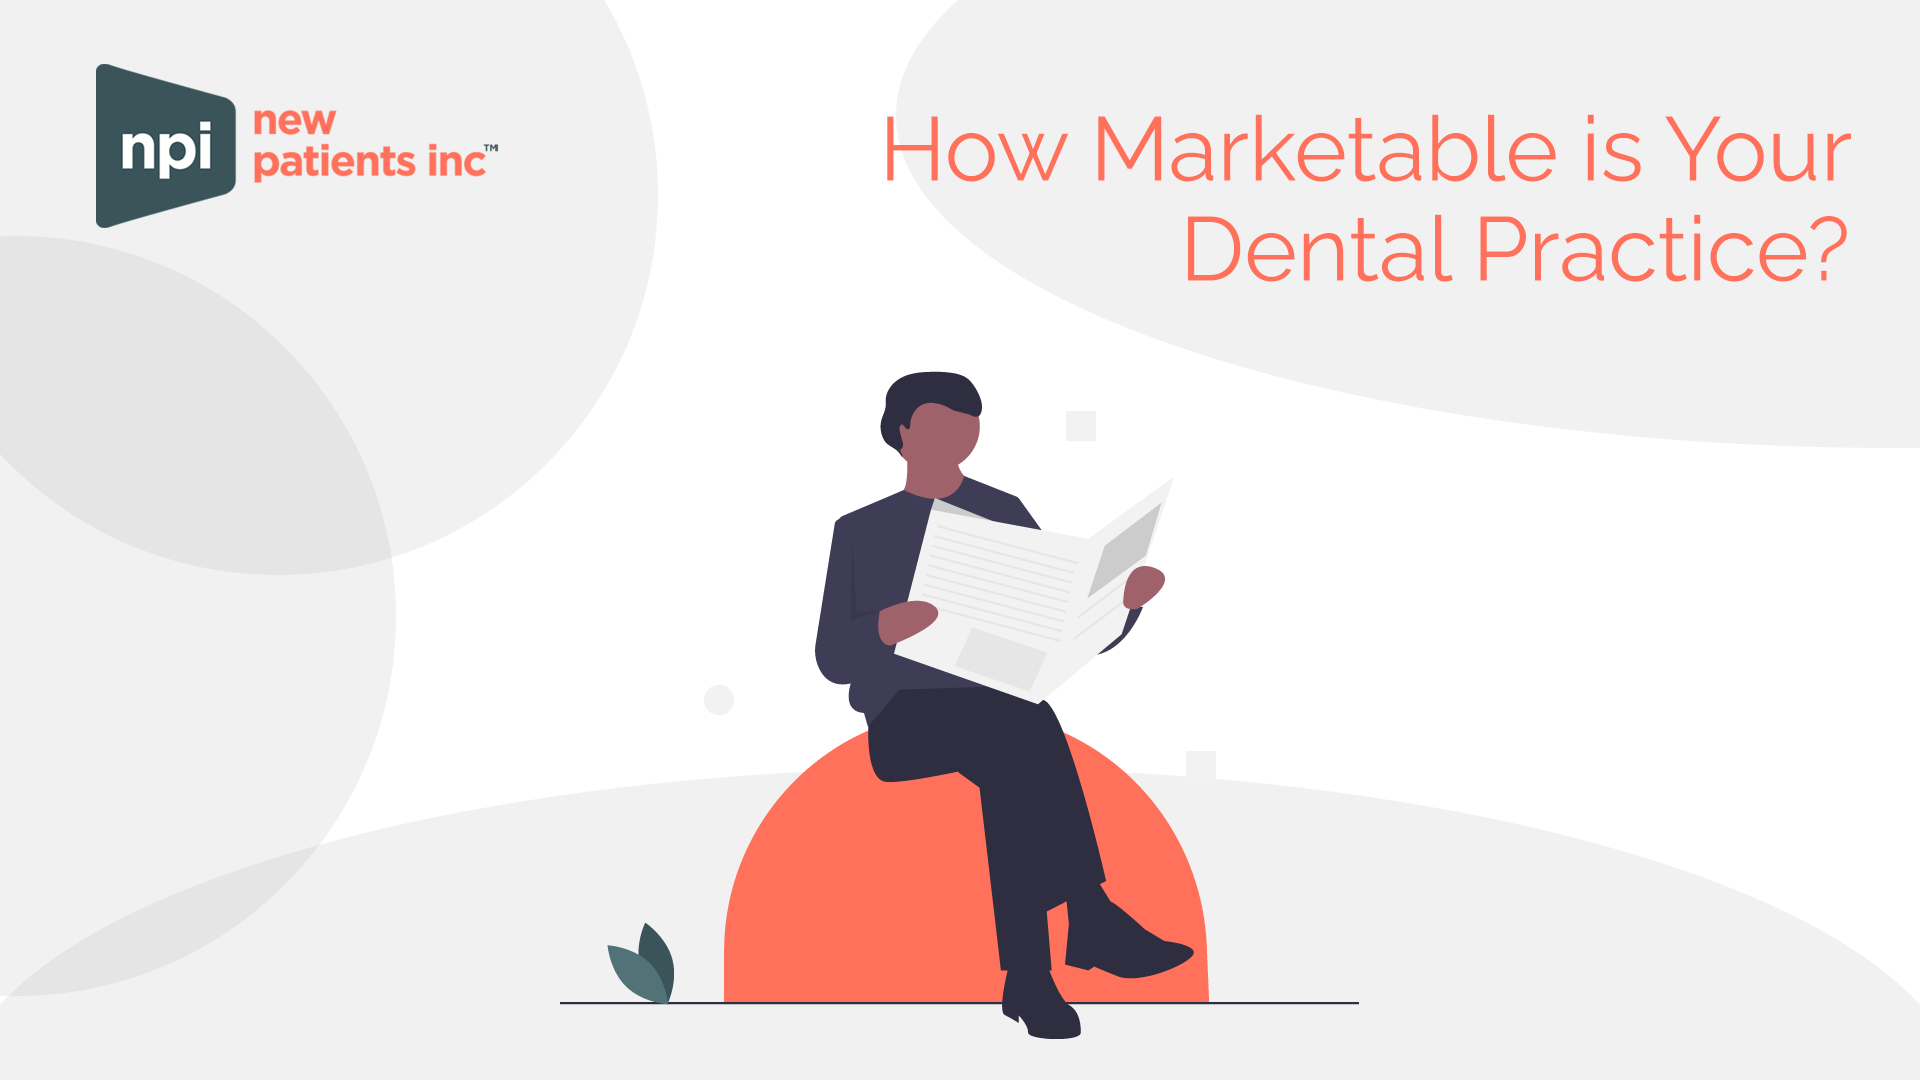 Marketability of a dental practice